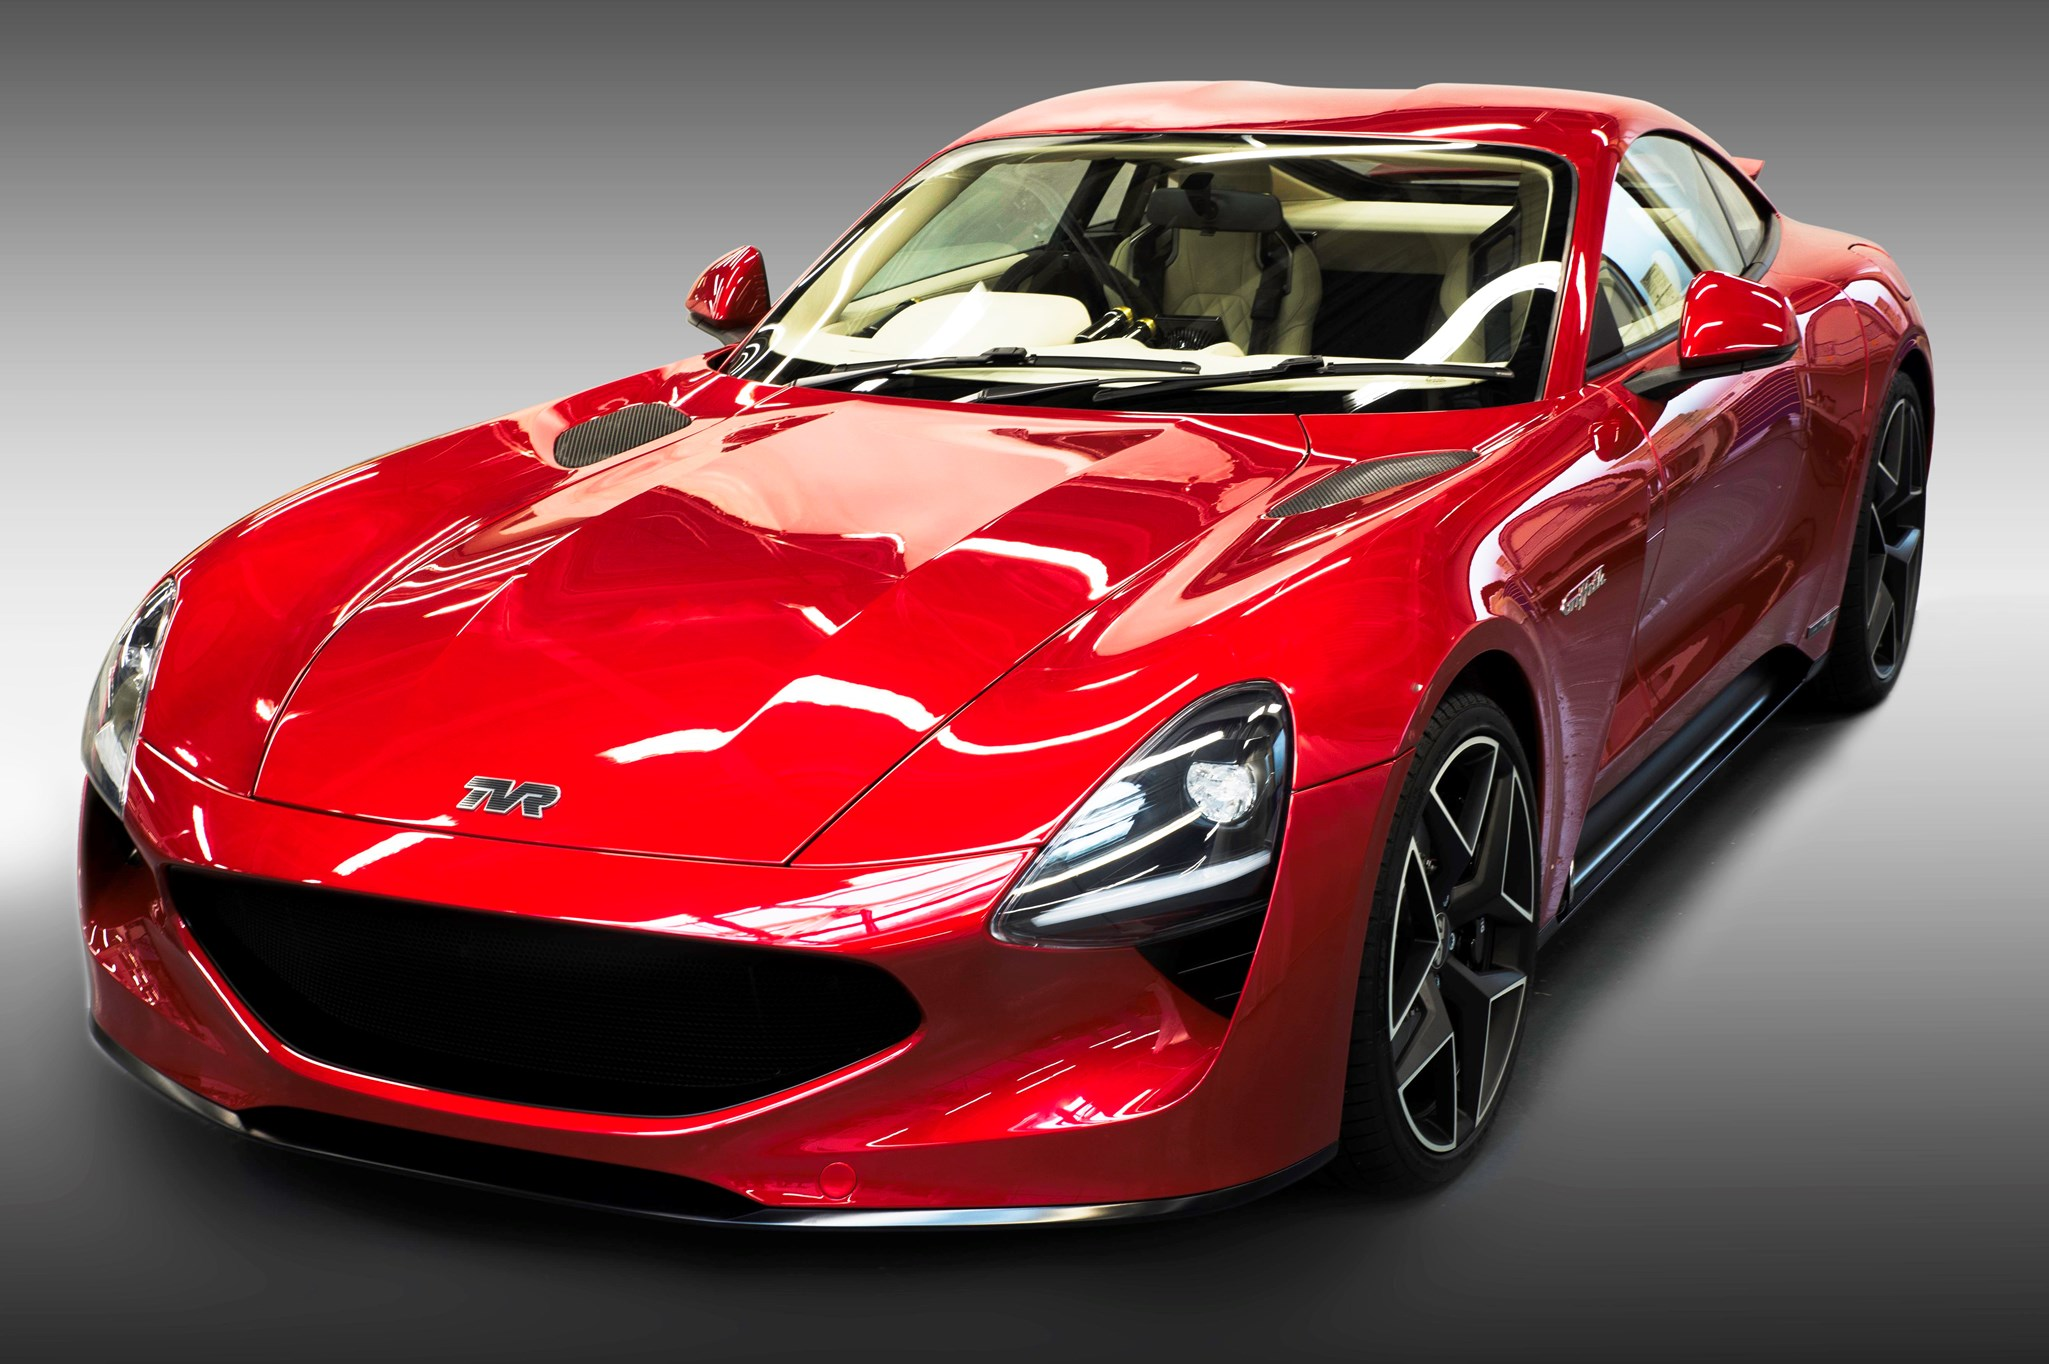 new 2018 tvr sports car news photos specs prices by car magazine. Black Bedroom Furniture Sets. Home Design Ideas